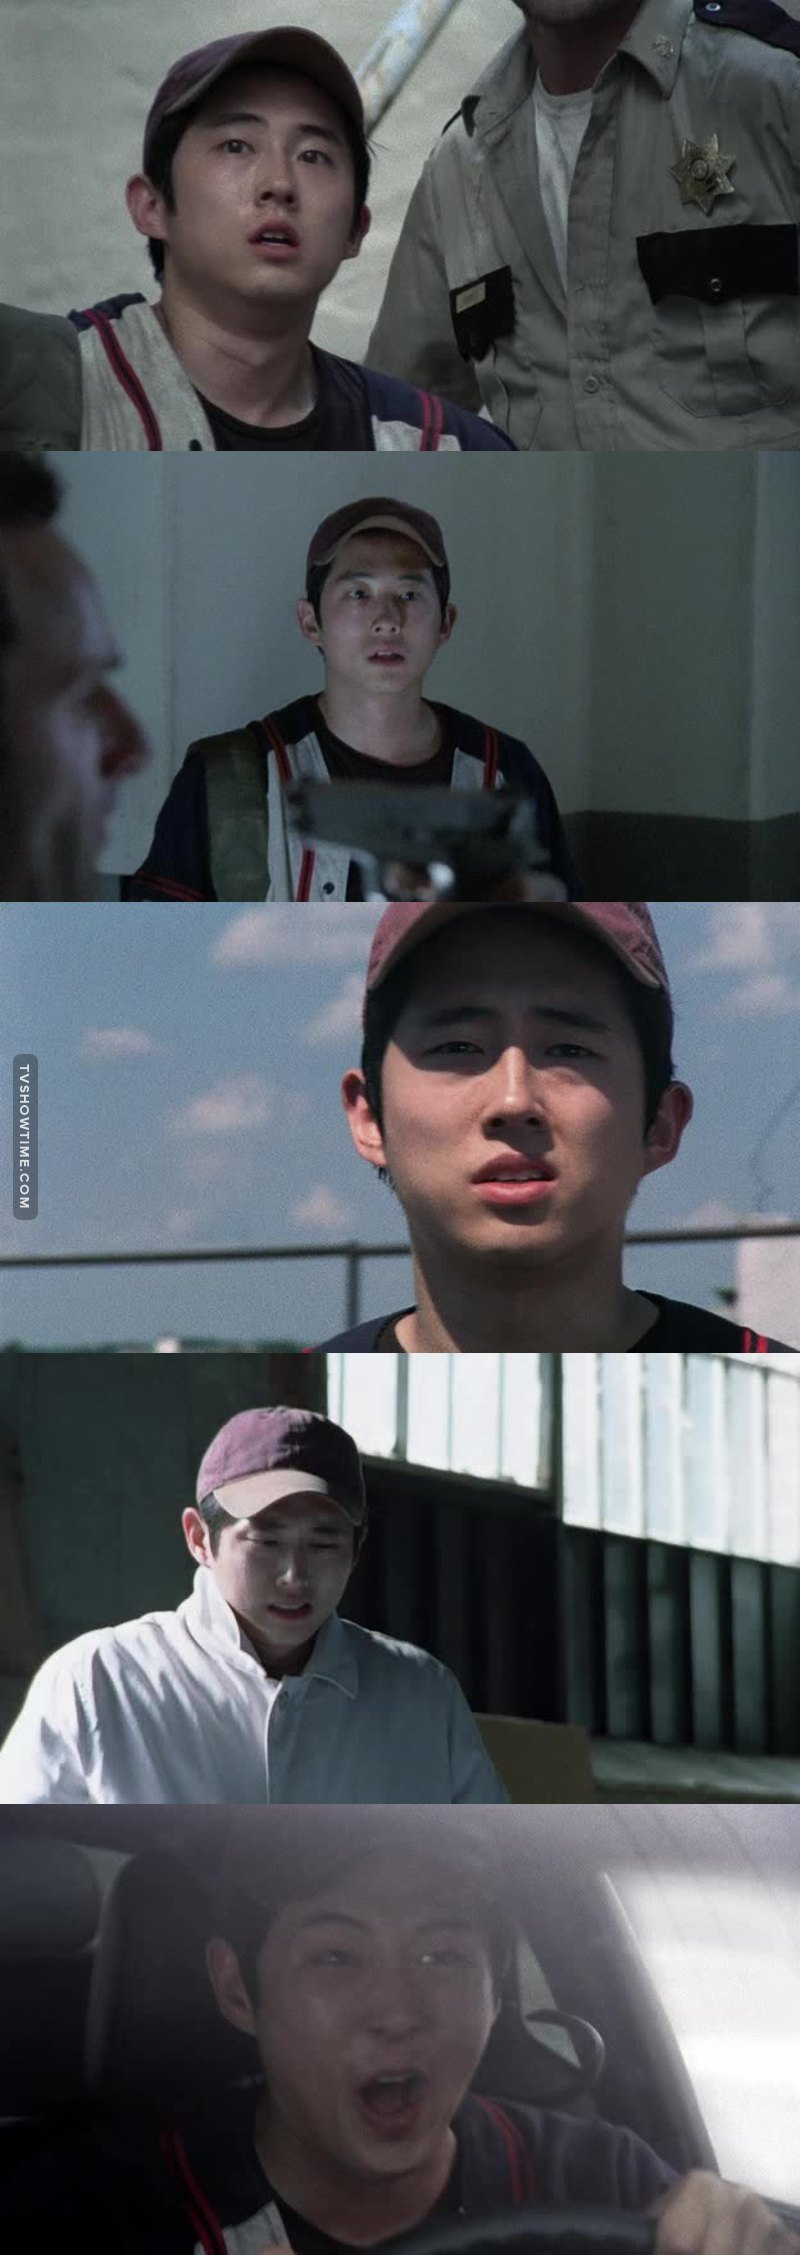 Glenn is too cute to be real